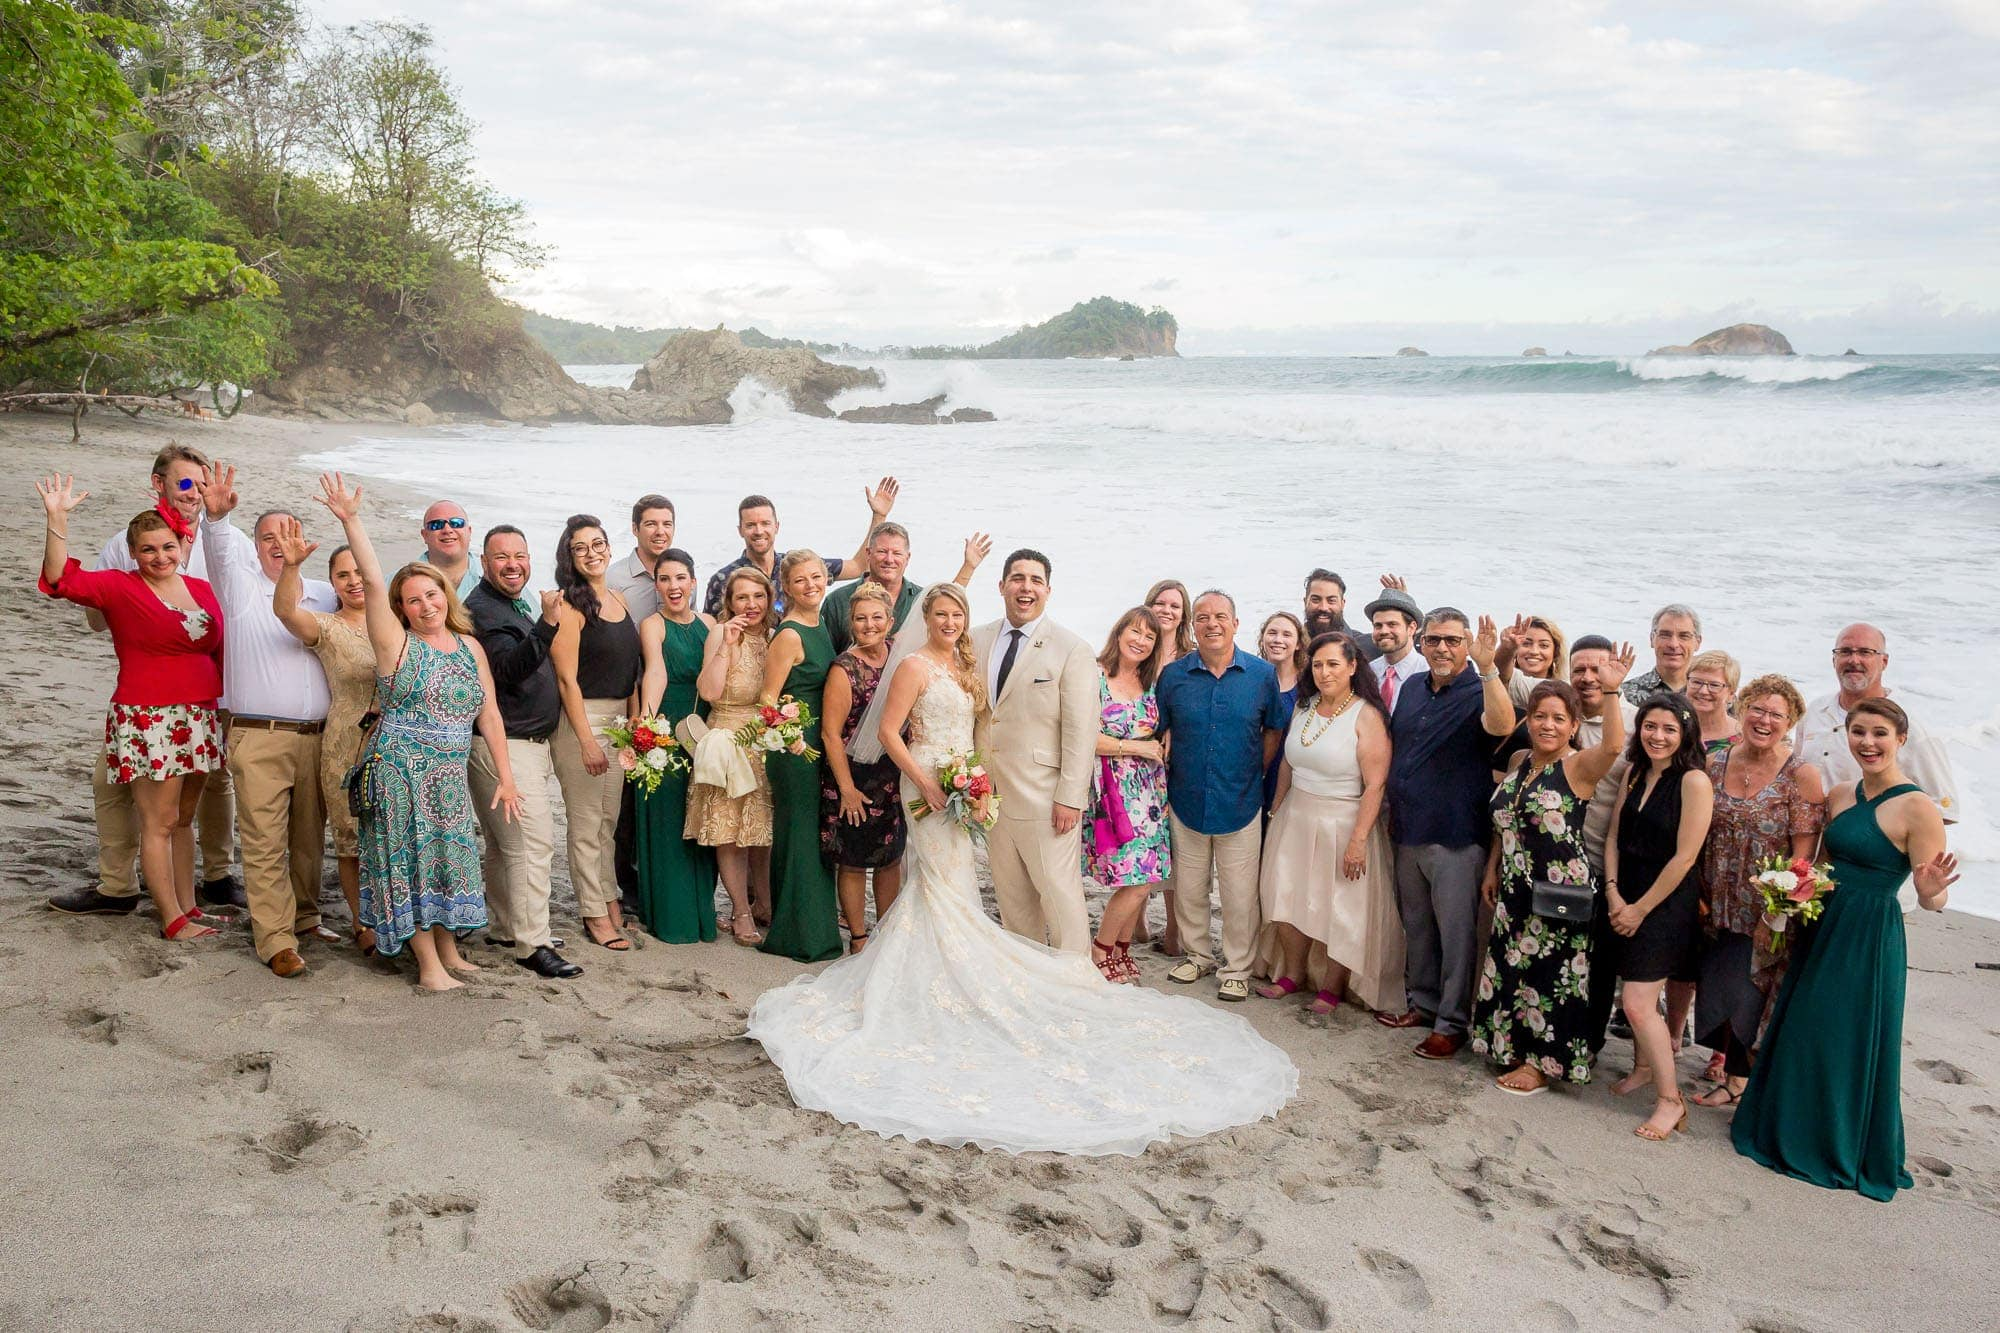 The happy group before the start of the beach wedding recepption